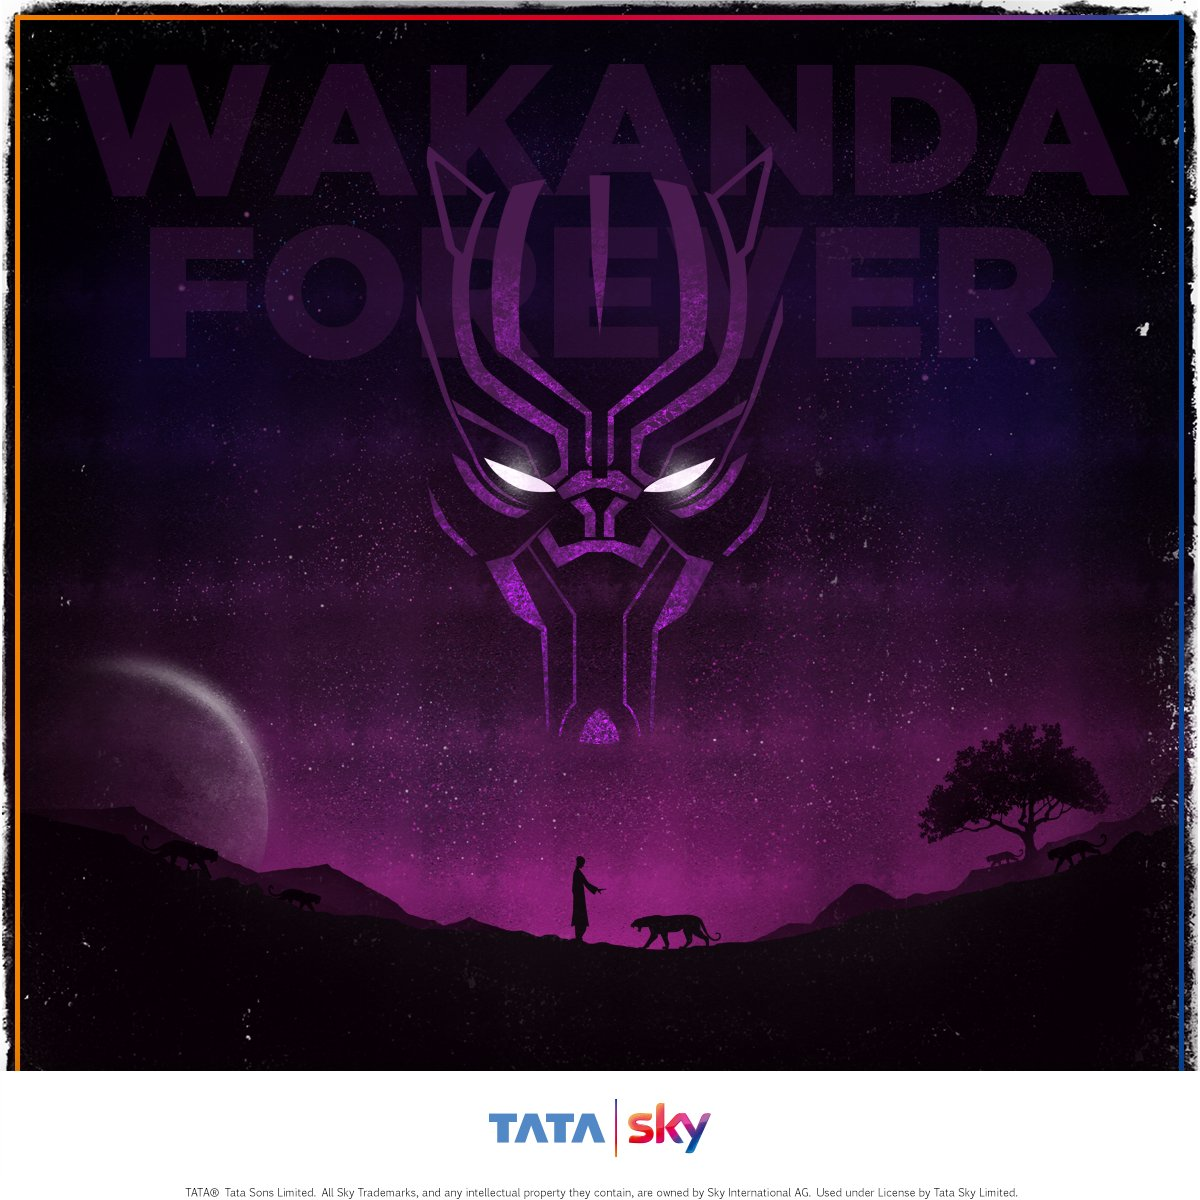 King T&#39;Challa of Wakanda is a crime-fighting vigilante who uses superior technology to protect his people. Tag the friends you are most excited to watch Avengers: Infinity War with! #InfinityWar #CountdownToInfinityWar <br>http://pic.twitter.com/uysItrFd0s